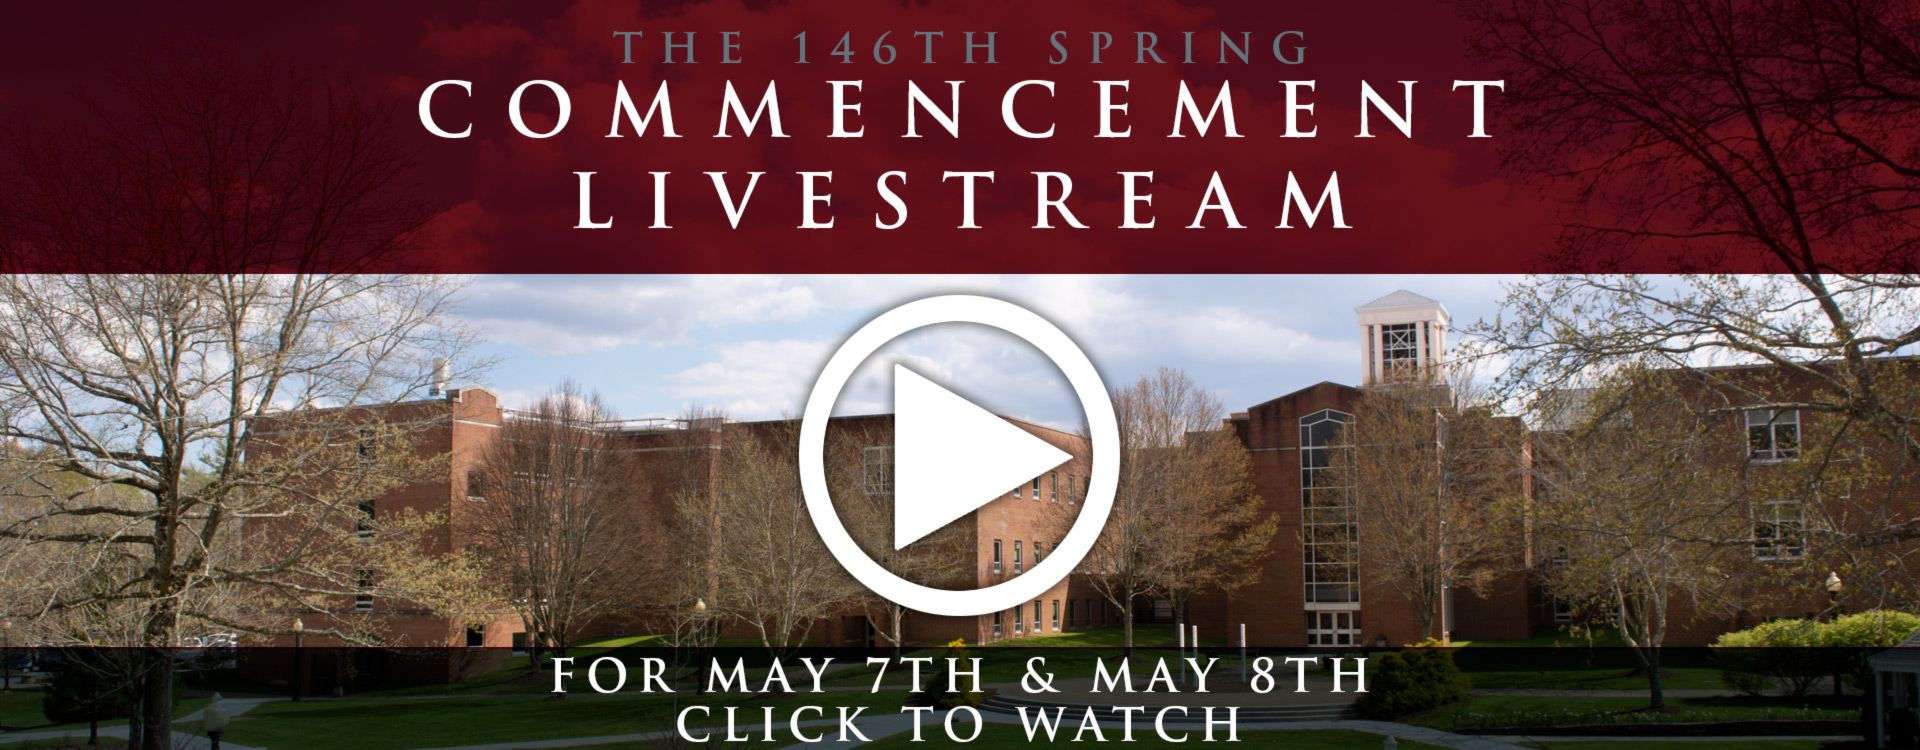 Click here to watch the Spring 2021 Commencement Livestream from the comfort of home!